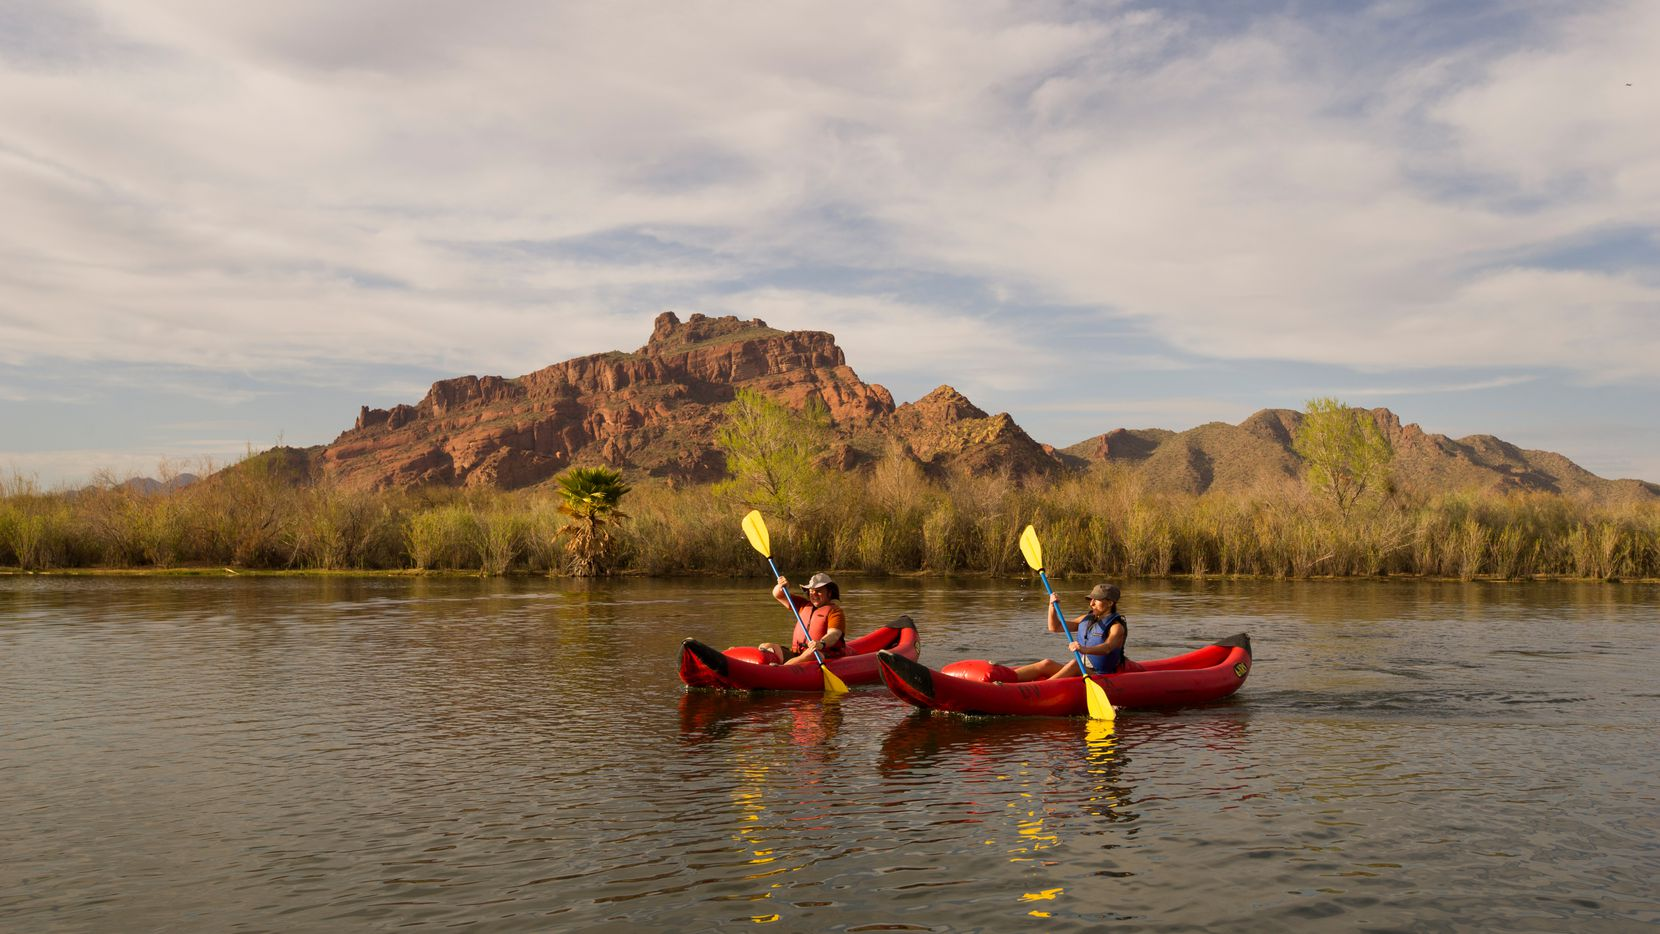 Along with mountains, you might spot bald eagles, wild horses and other wildlife during a kayaking trip along the Lower Salt River.